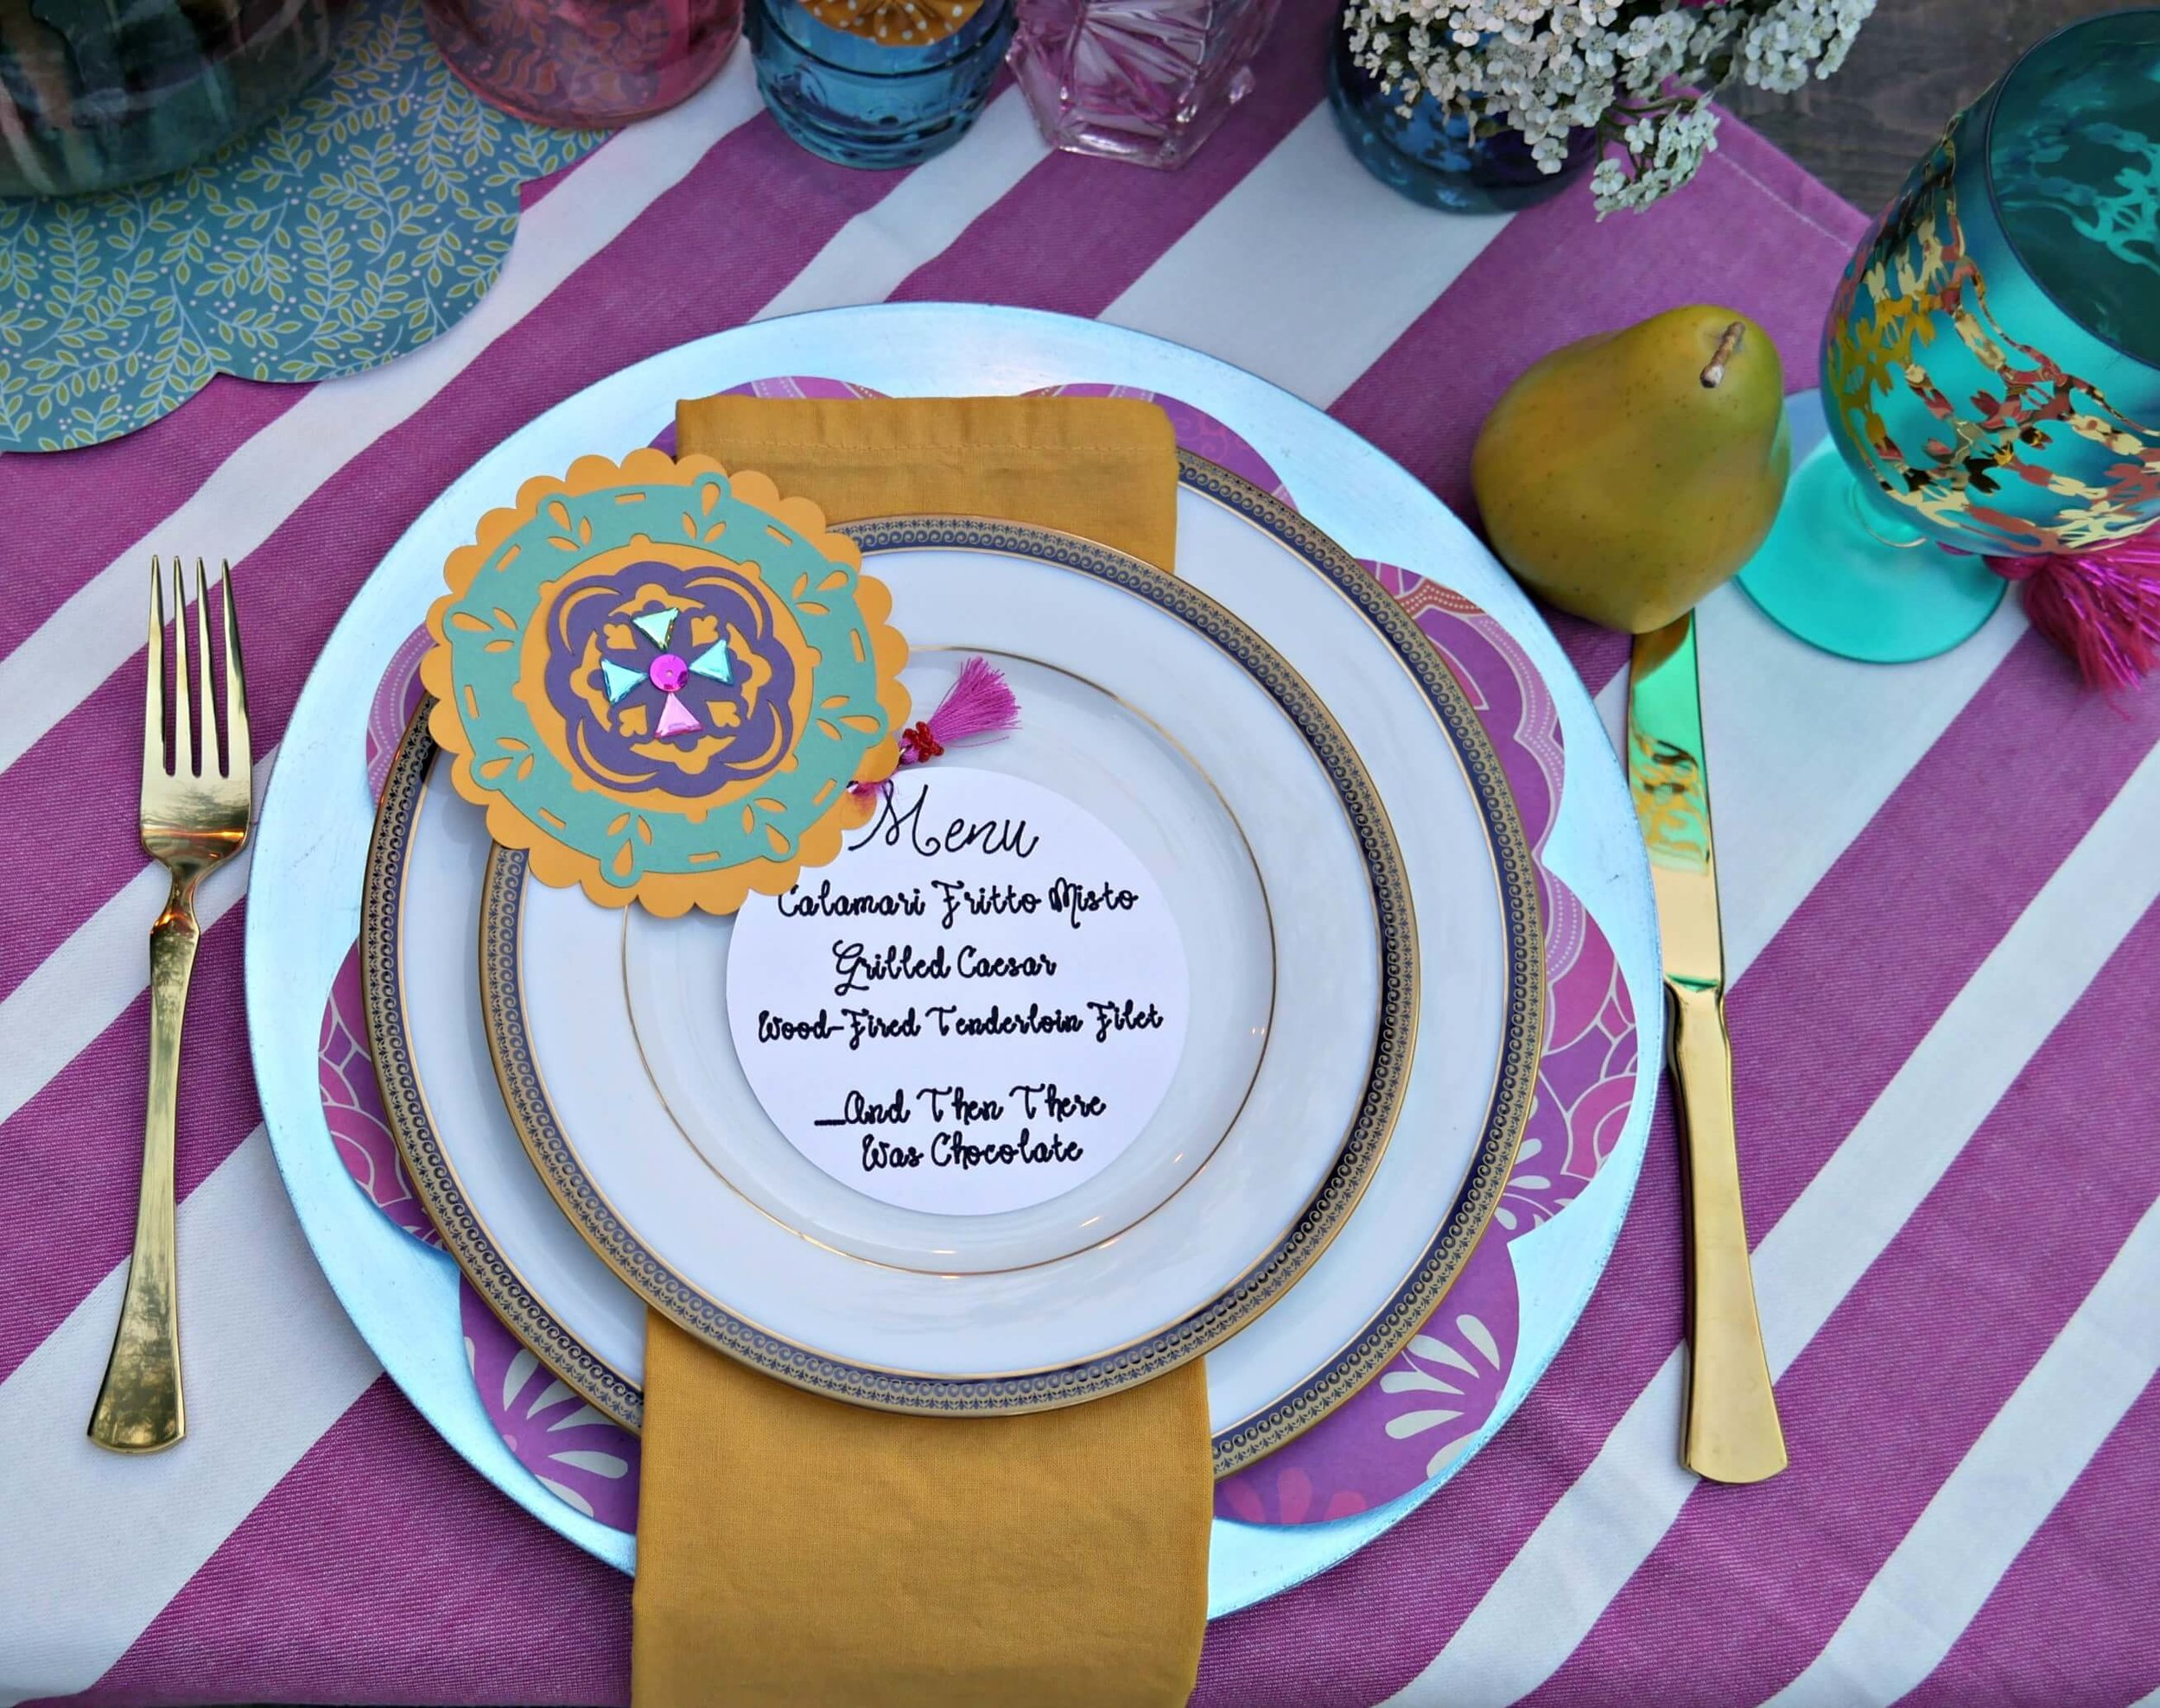 DIY party menu with bling - created with a Cricut for this boho chic engagement party. Styled by Mint Event Design www.minteventdesign.com #tablesetting #tablescapes #bohochic #cricutdiy